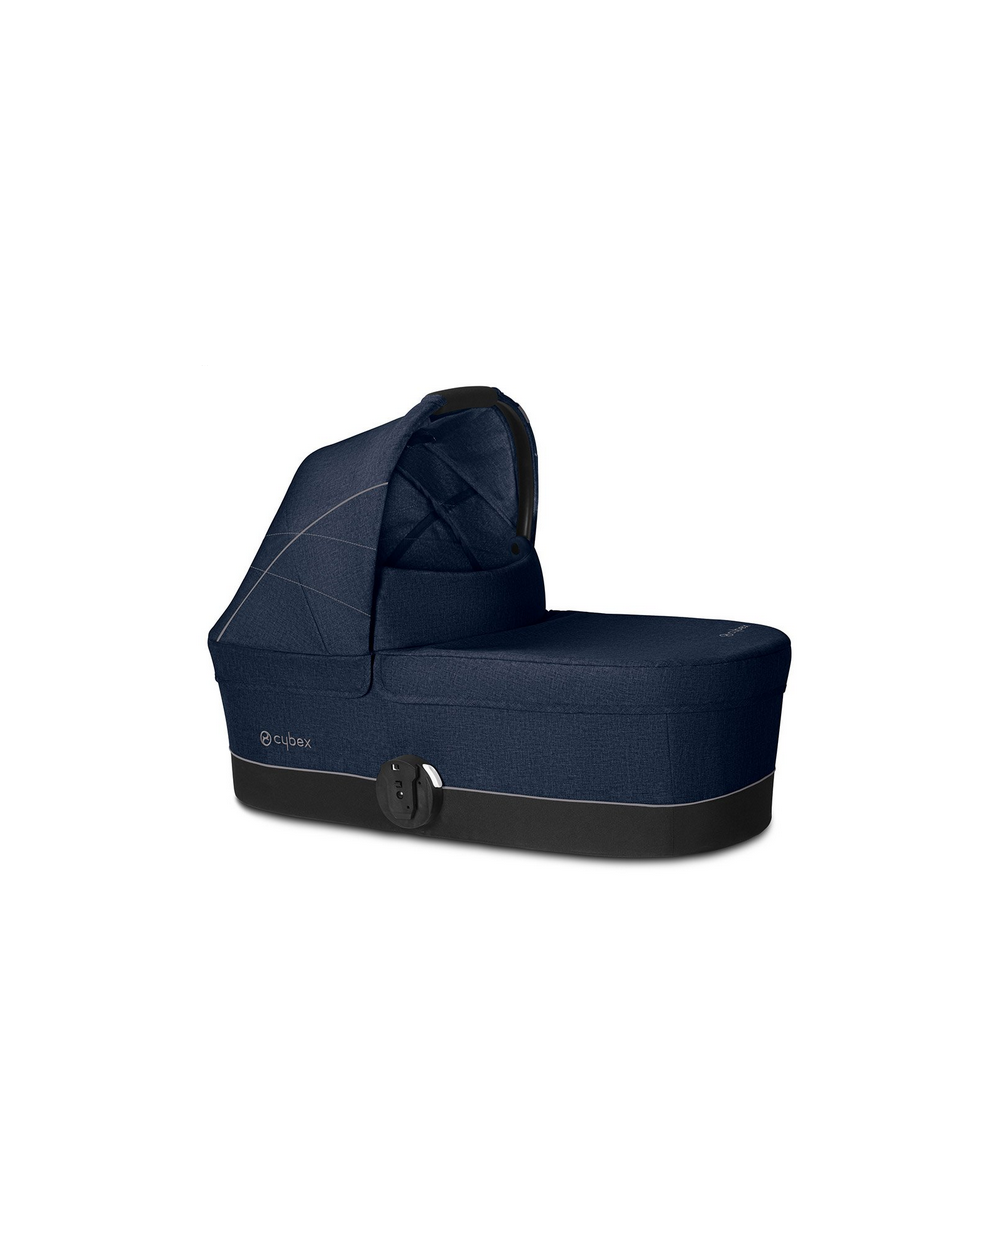 Capazo Balios s Denim blue